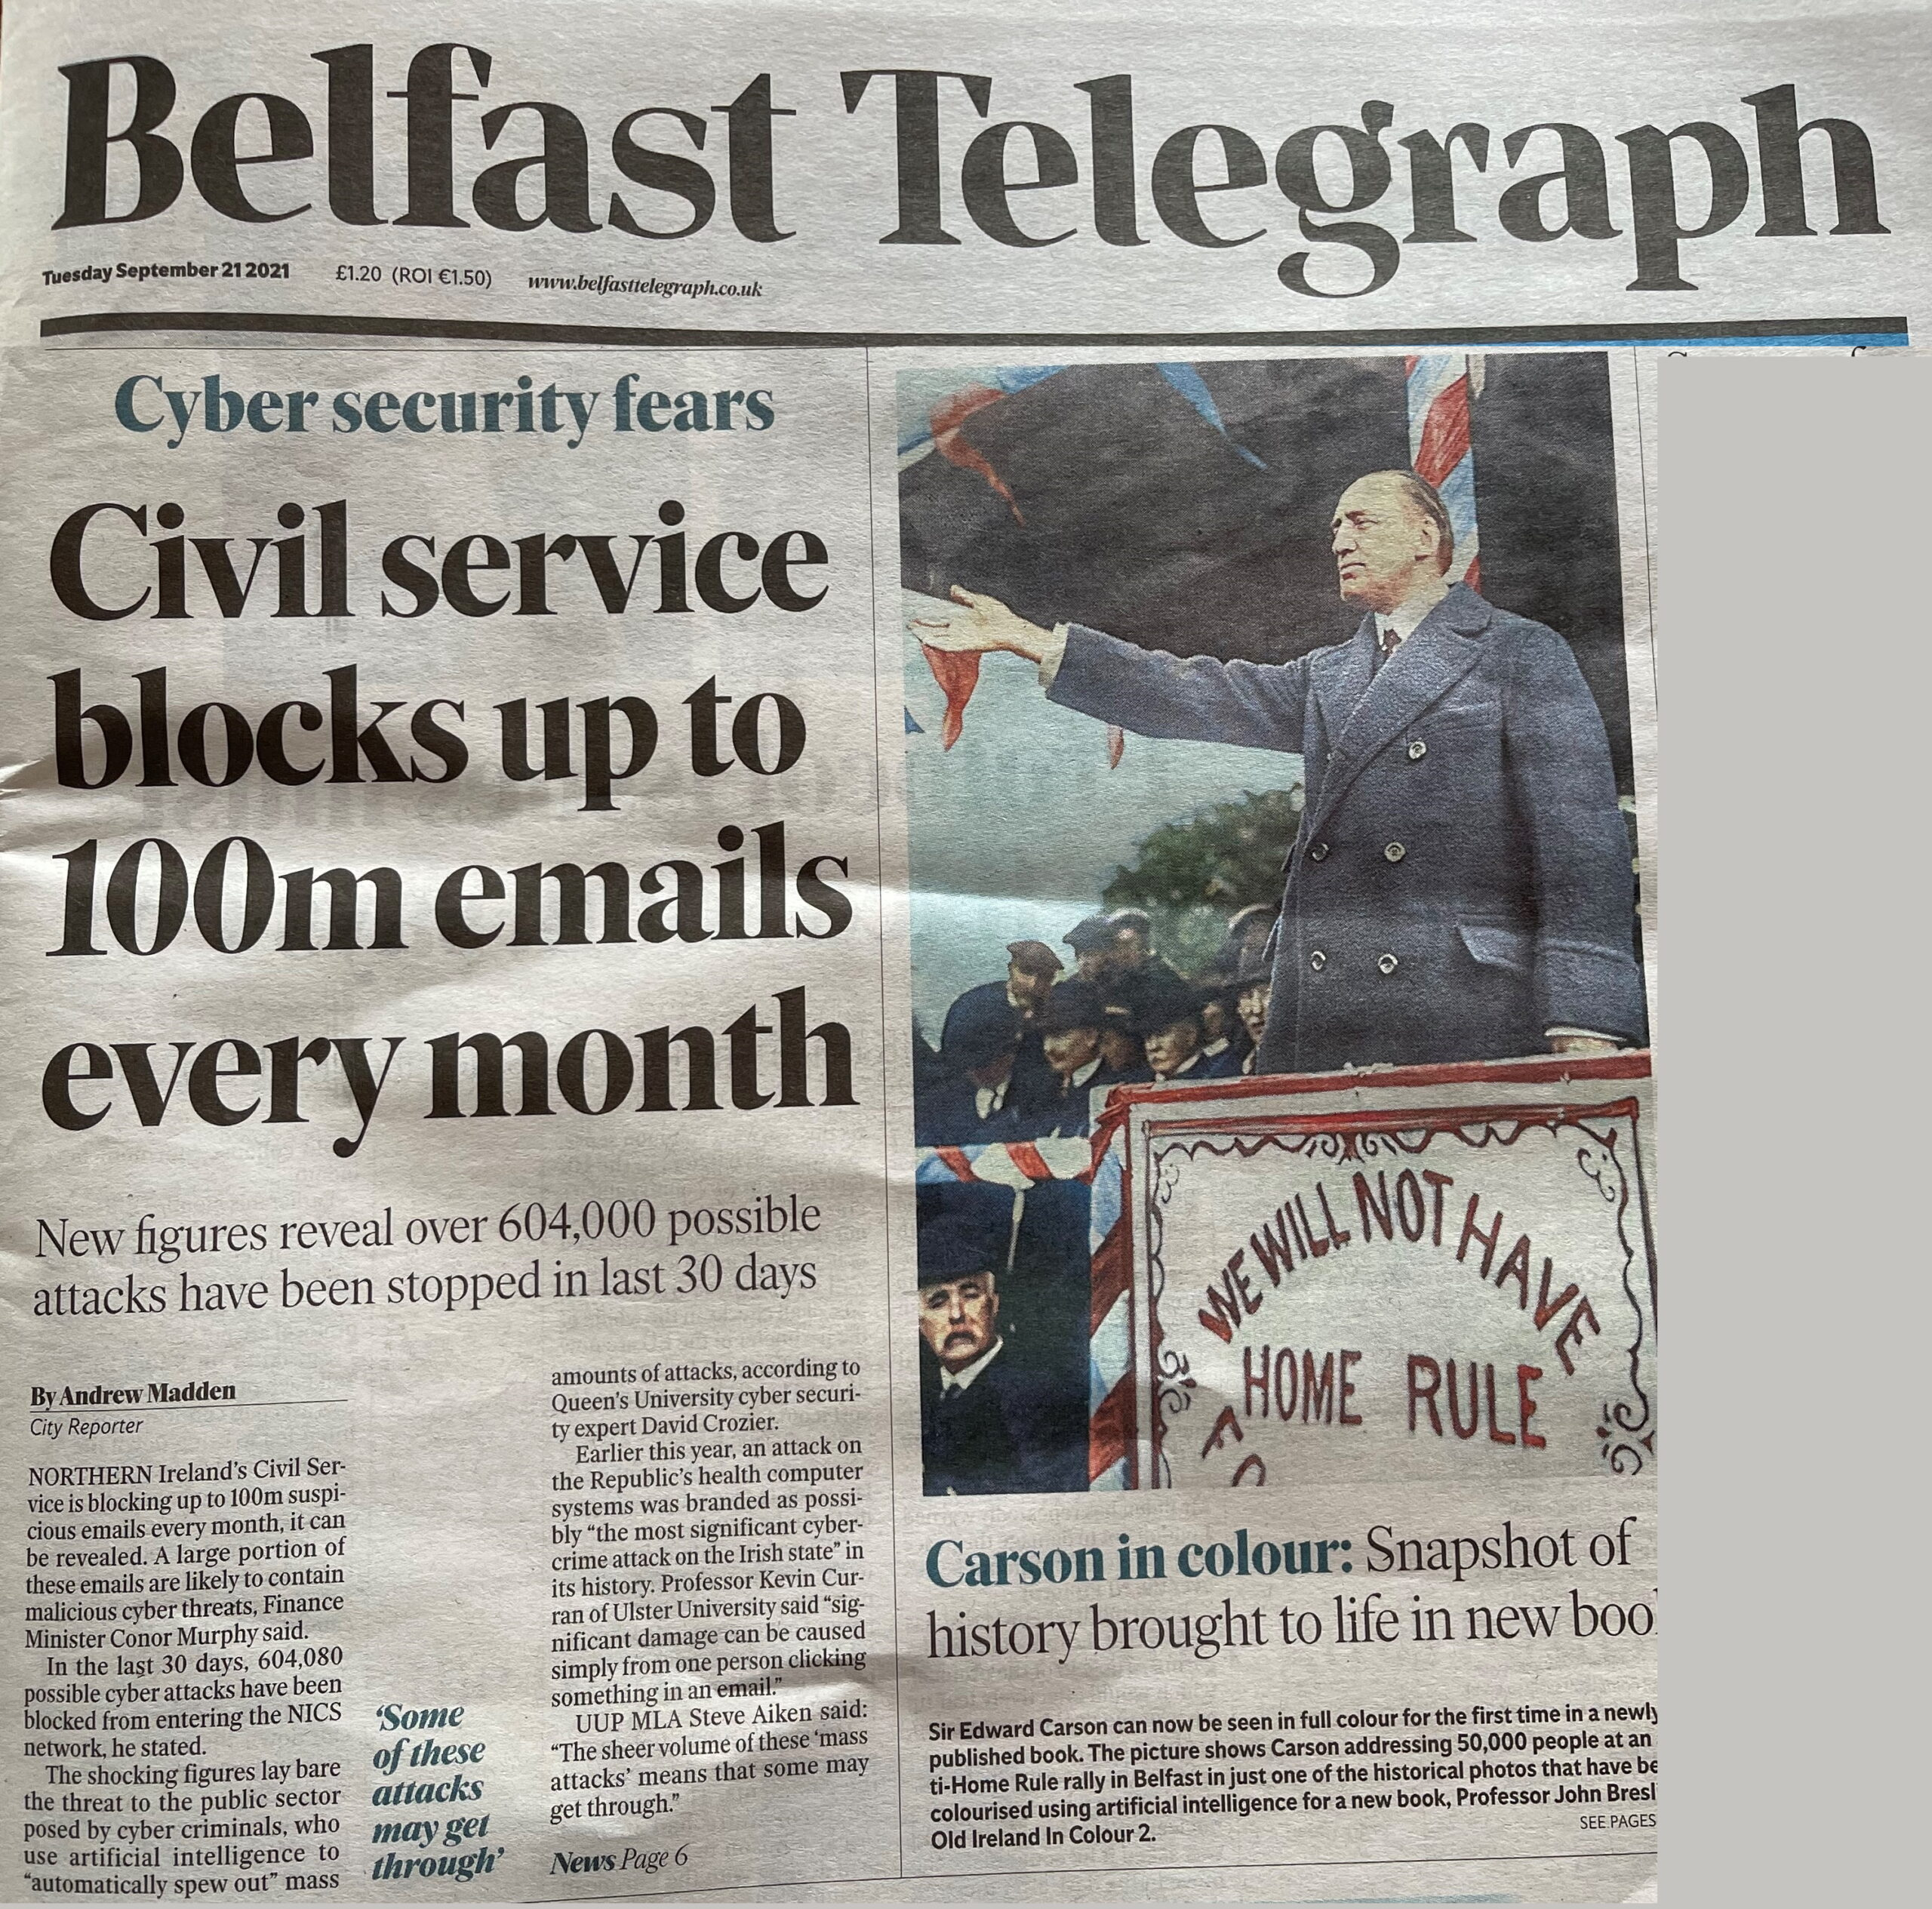 Professor Kevin Curran, Ulster University in an interview with the Belfast Telegraph on the rise of cyberattacks on the Northern Ireland Civil Service.